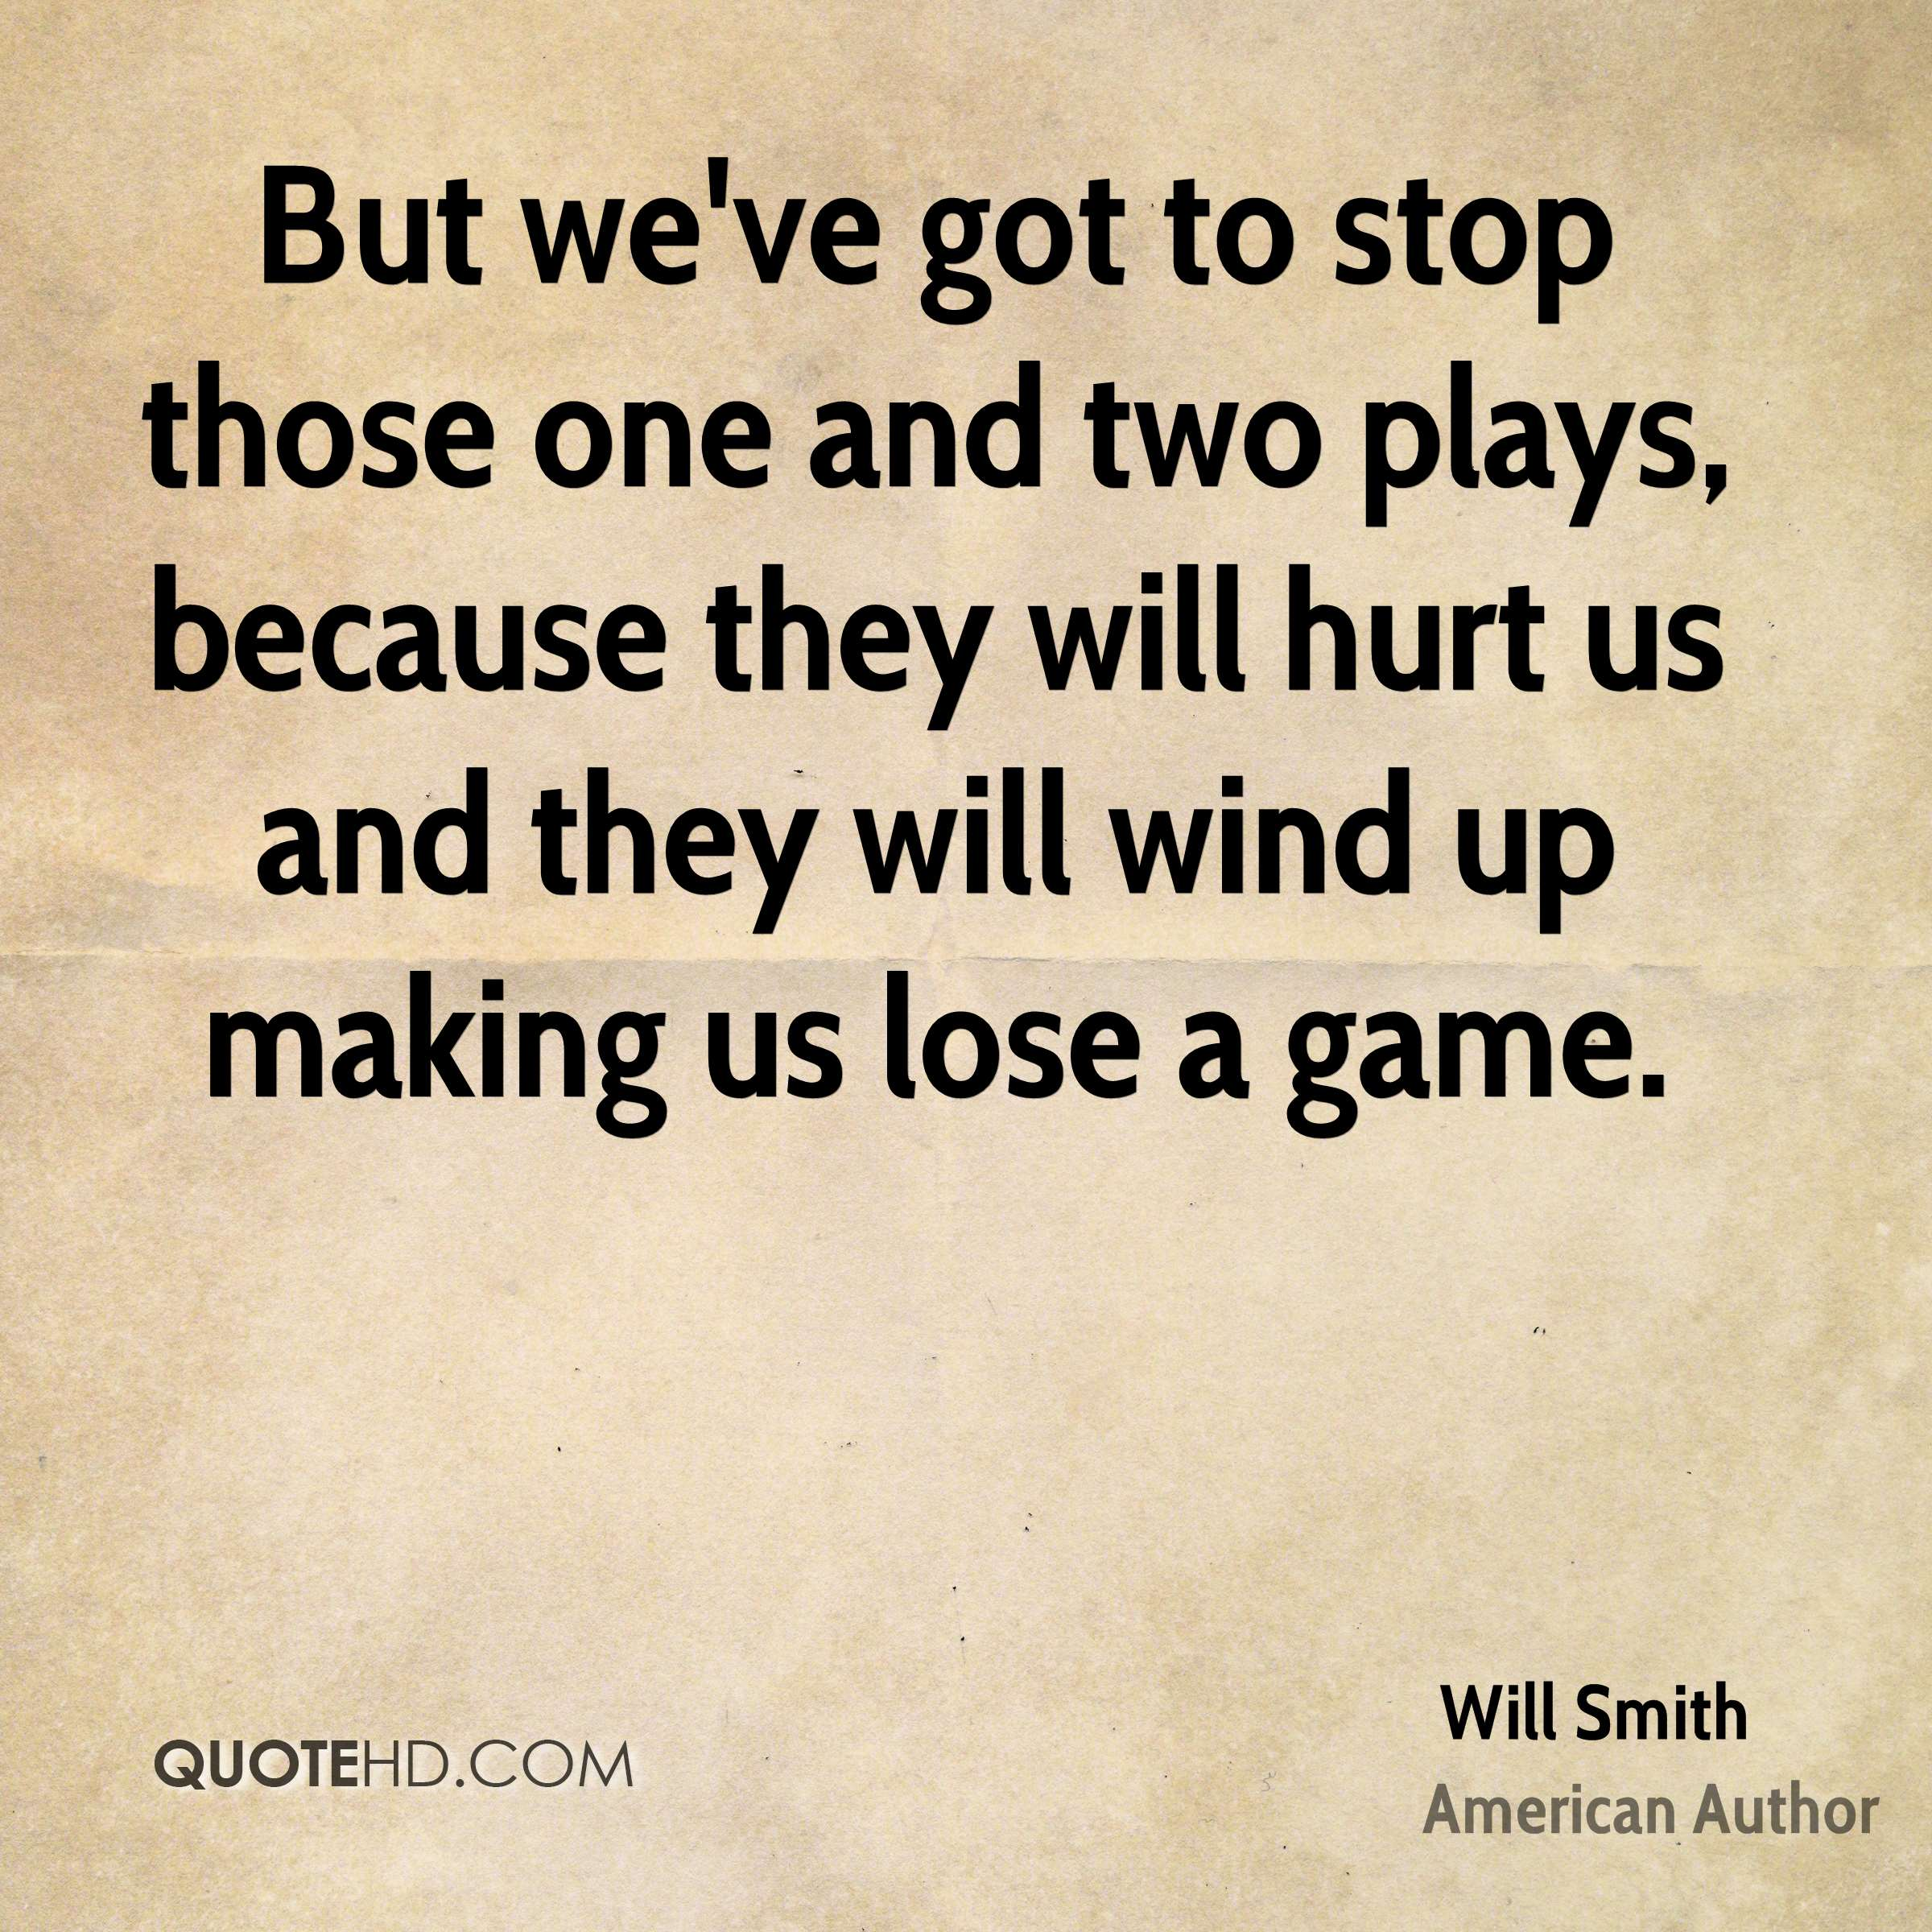 But we've got to stop those one and two plays, because they will hurt us and they will wind up making us lose a game.